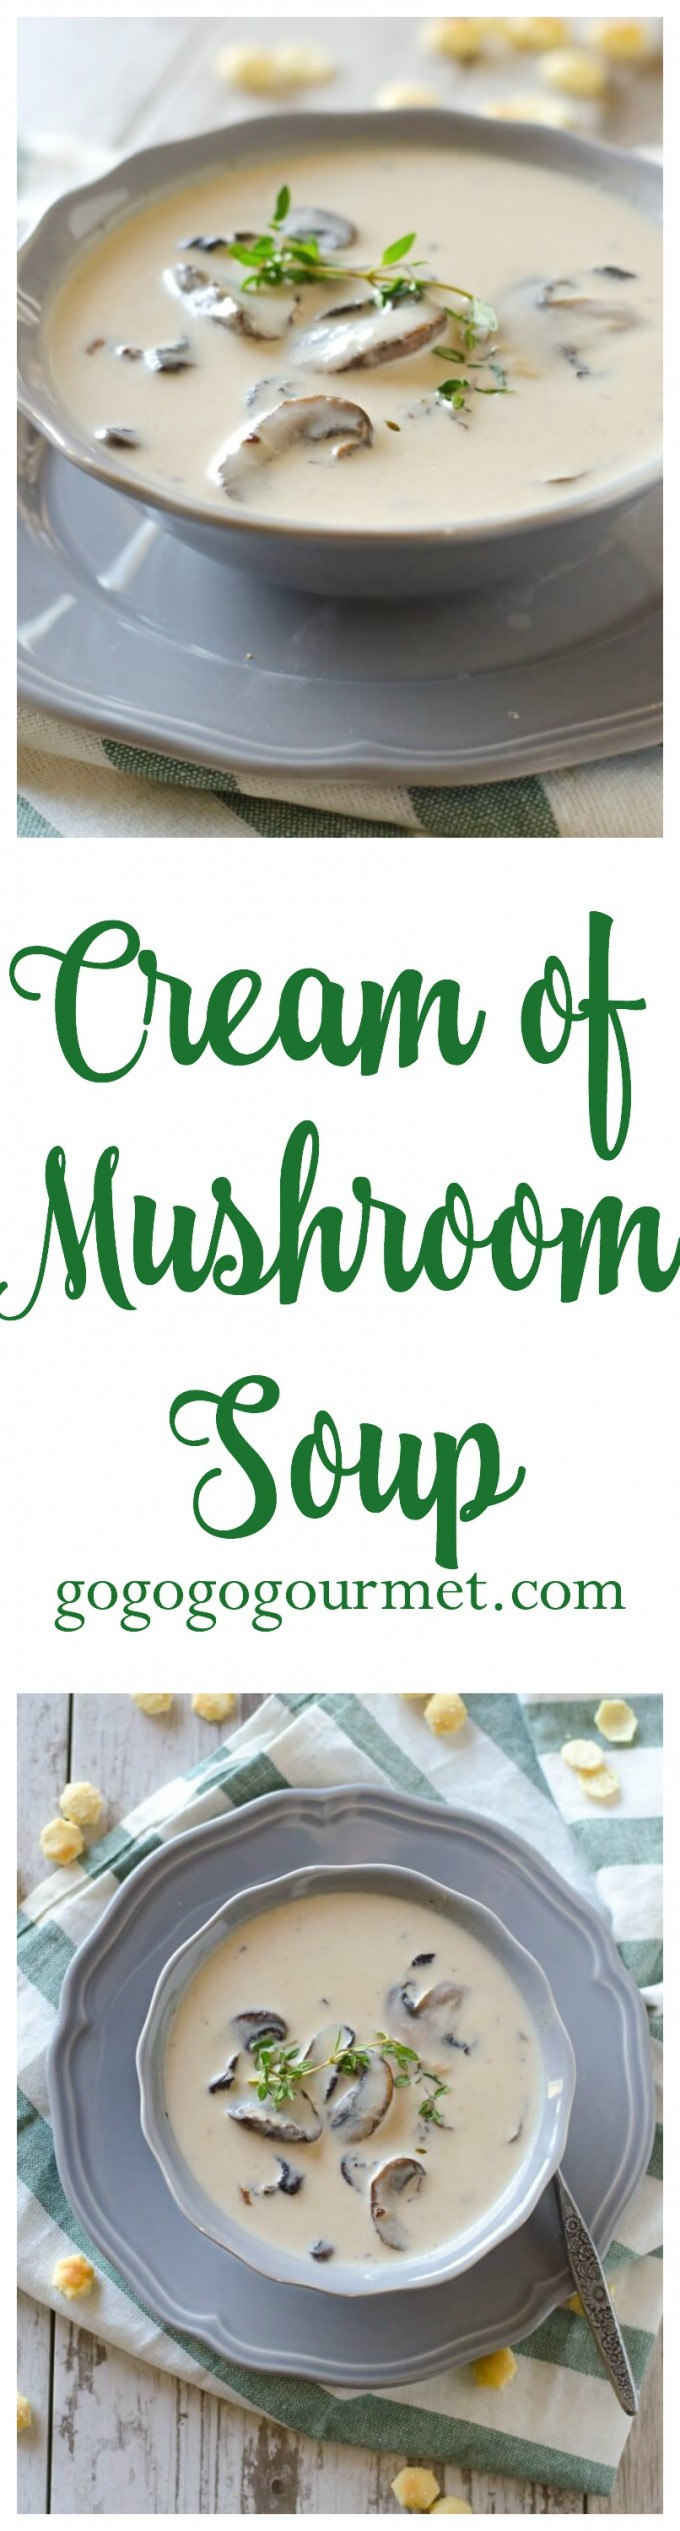 This smooth and creamy soup is perfect for transitioning into spring! Cream of Mushroom Soup | Go Go Go Gourmet @Go Go Go Gourmet